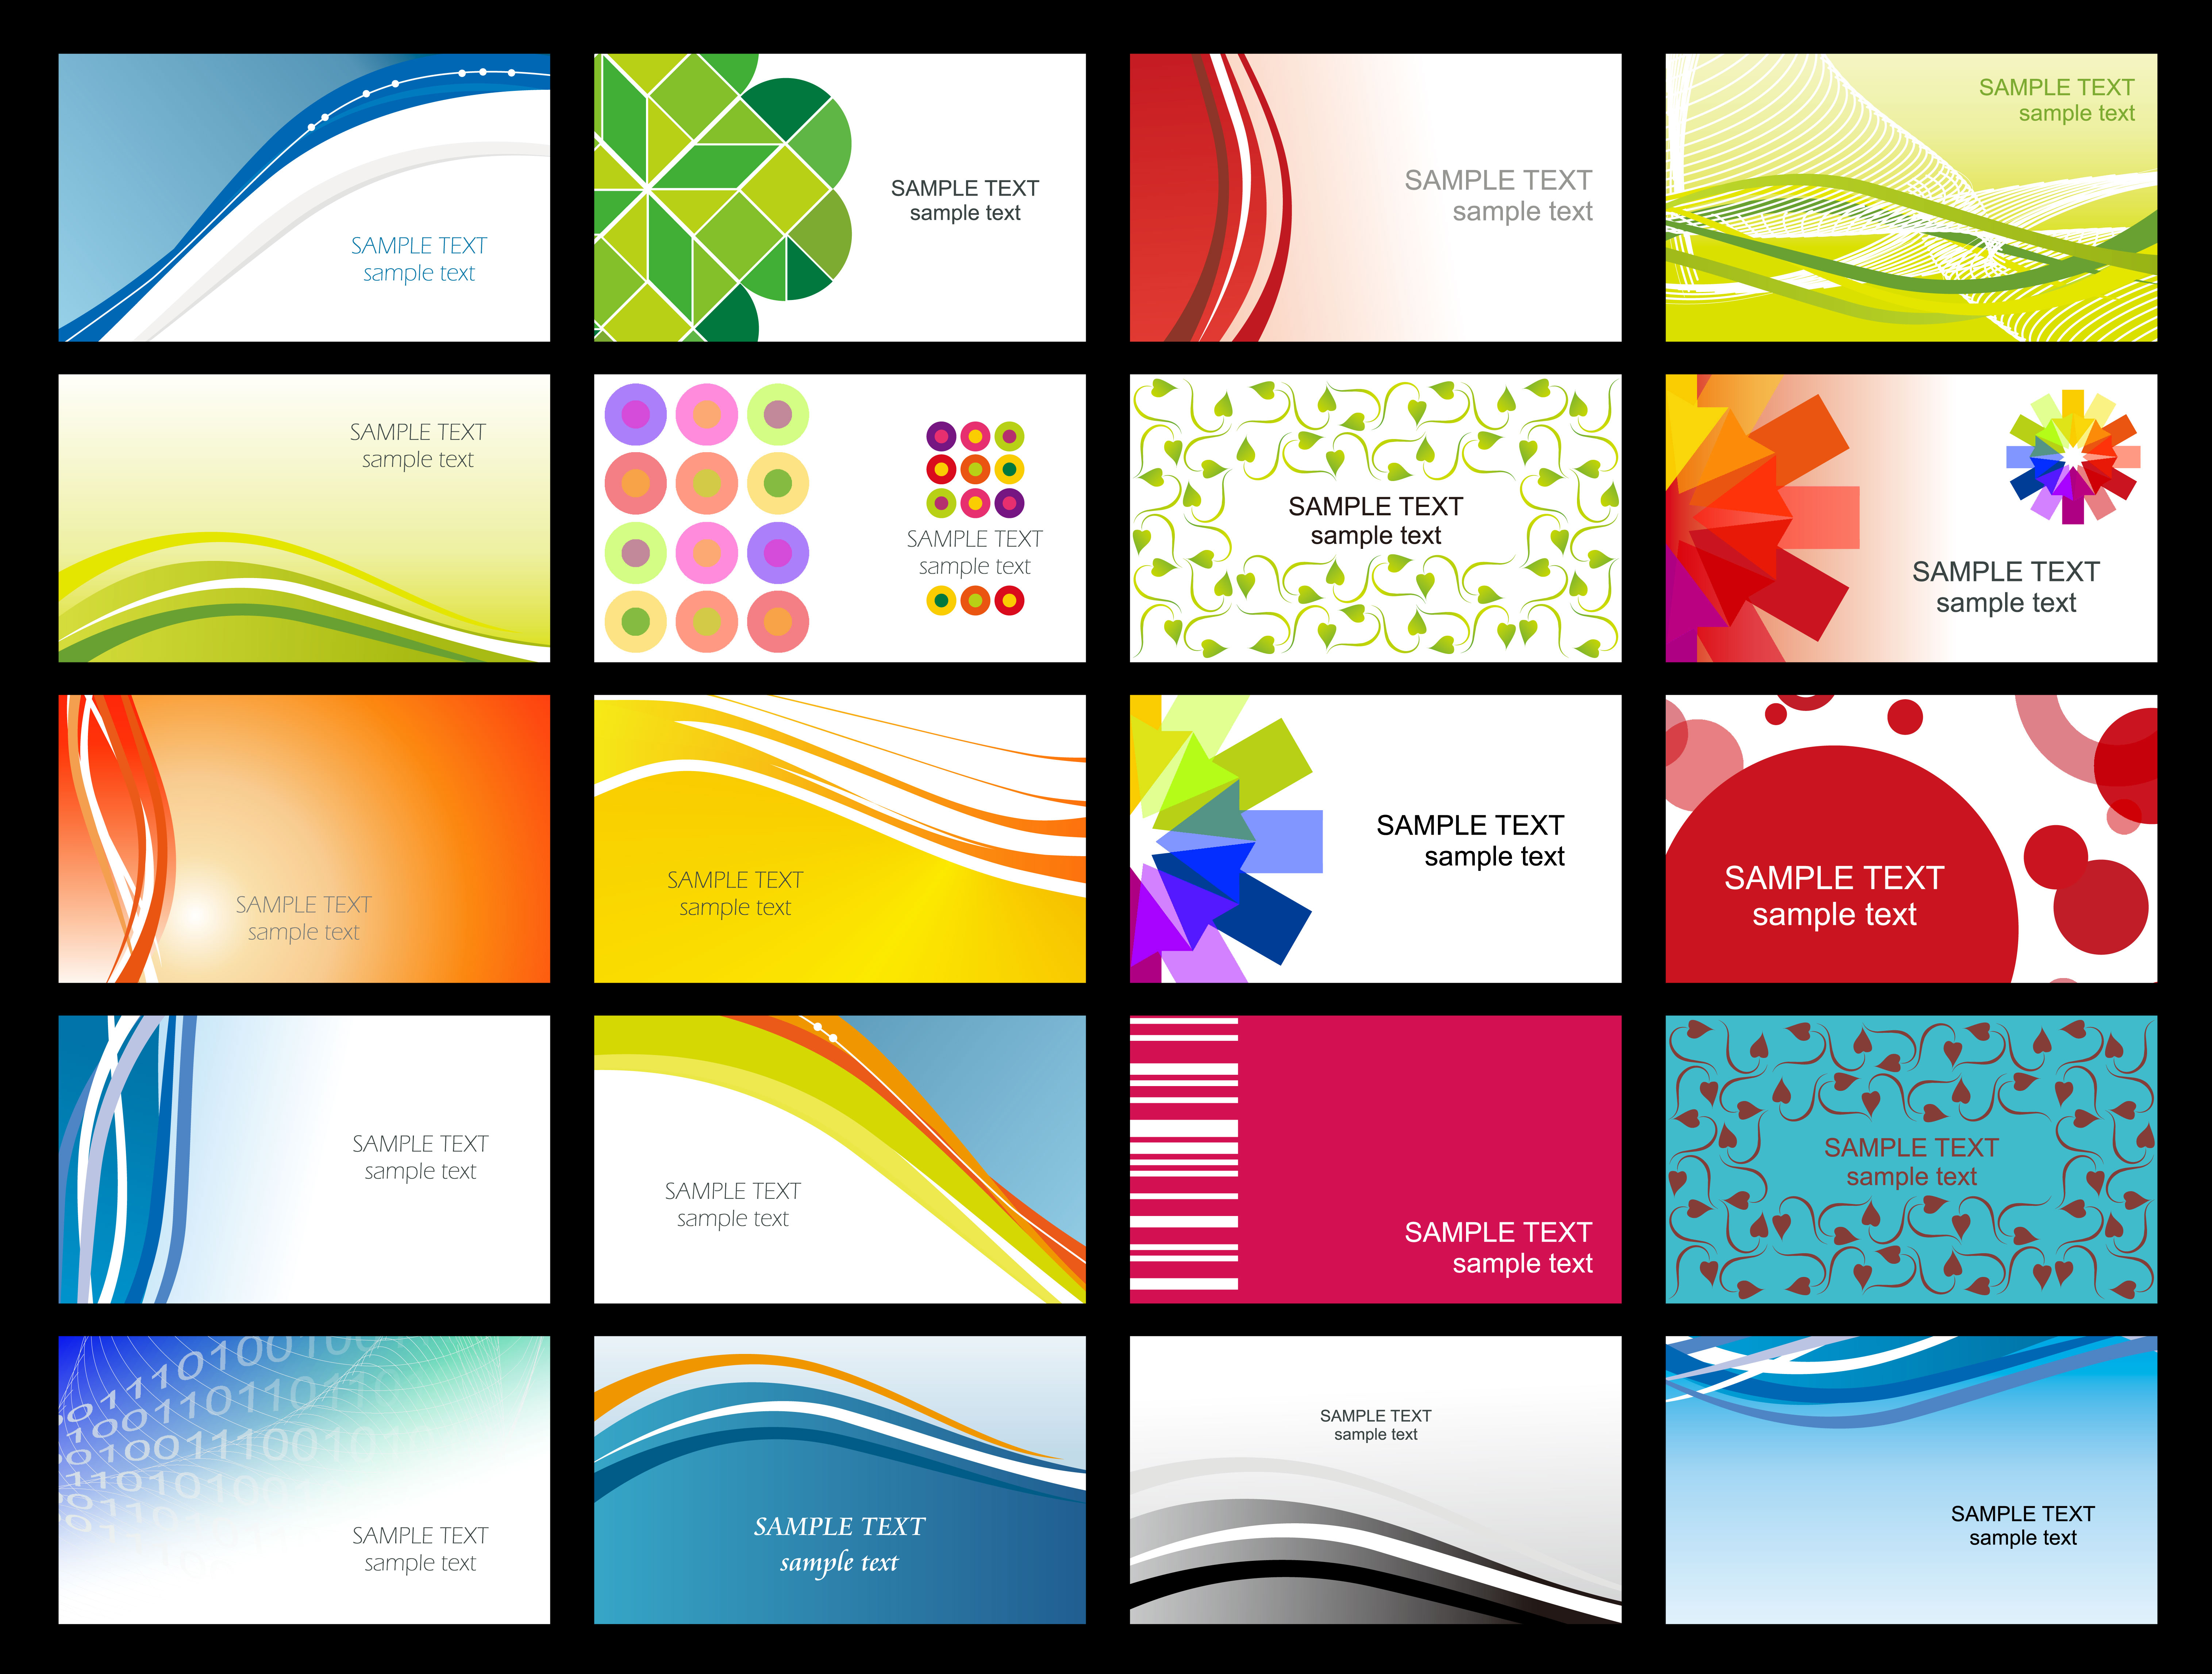 Free Printable Business Card Templates Fresh Free Printable Business - Free Printable Business Card Templates For Word